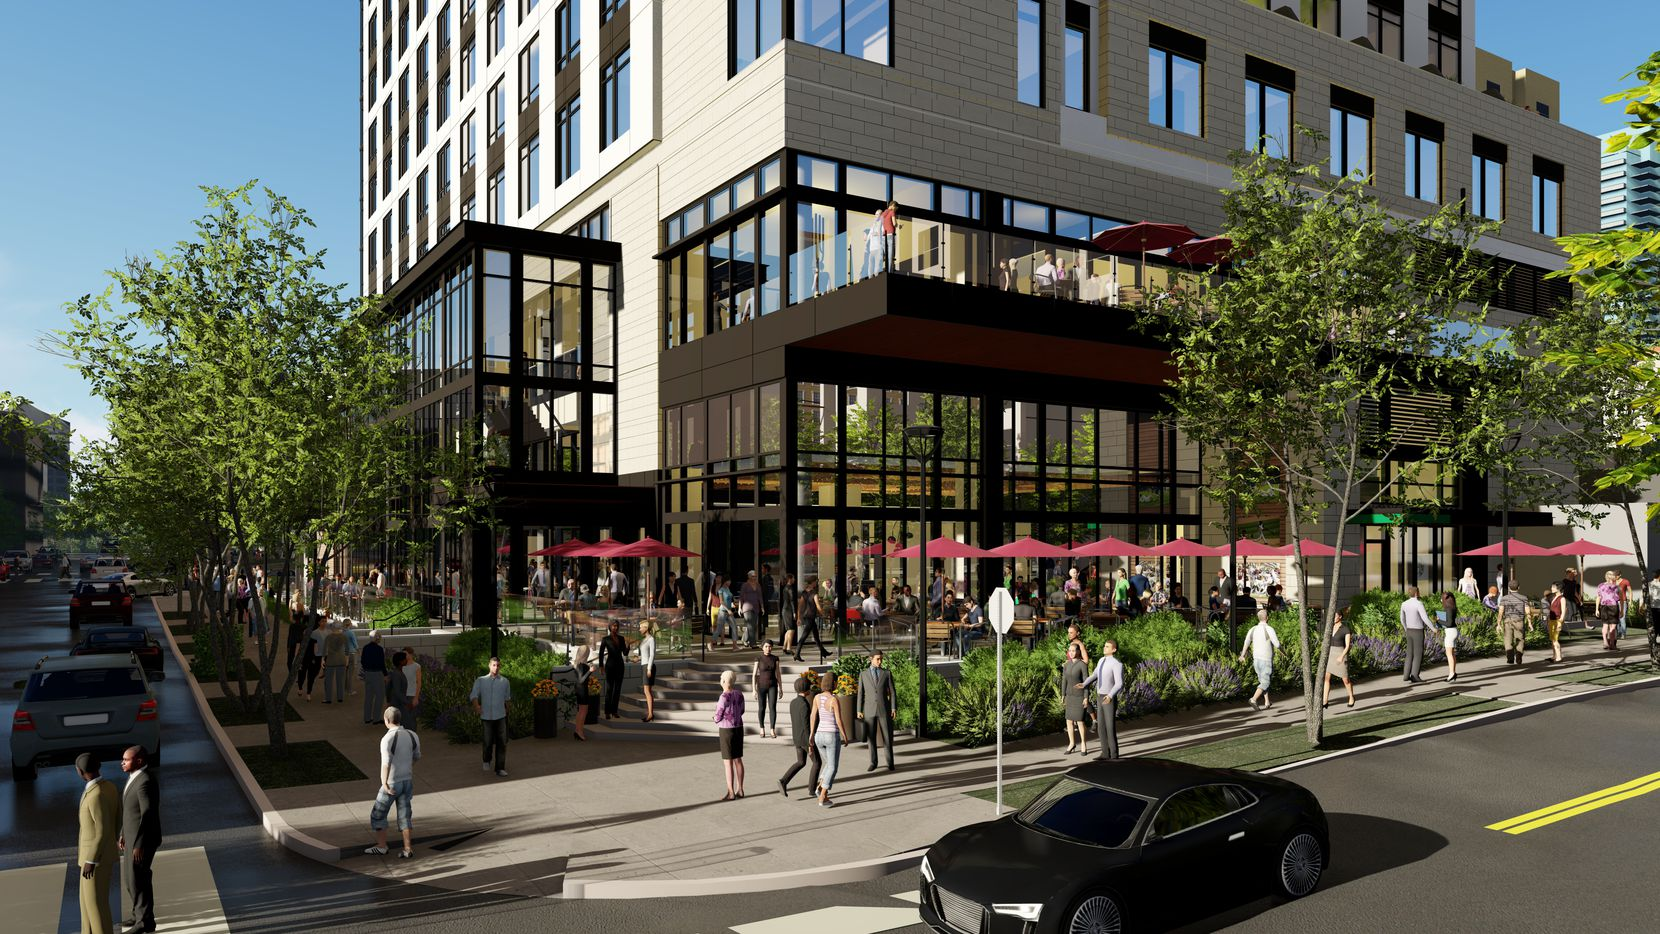 The new hotel will have a ground-floor restaurant.